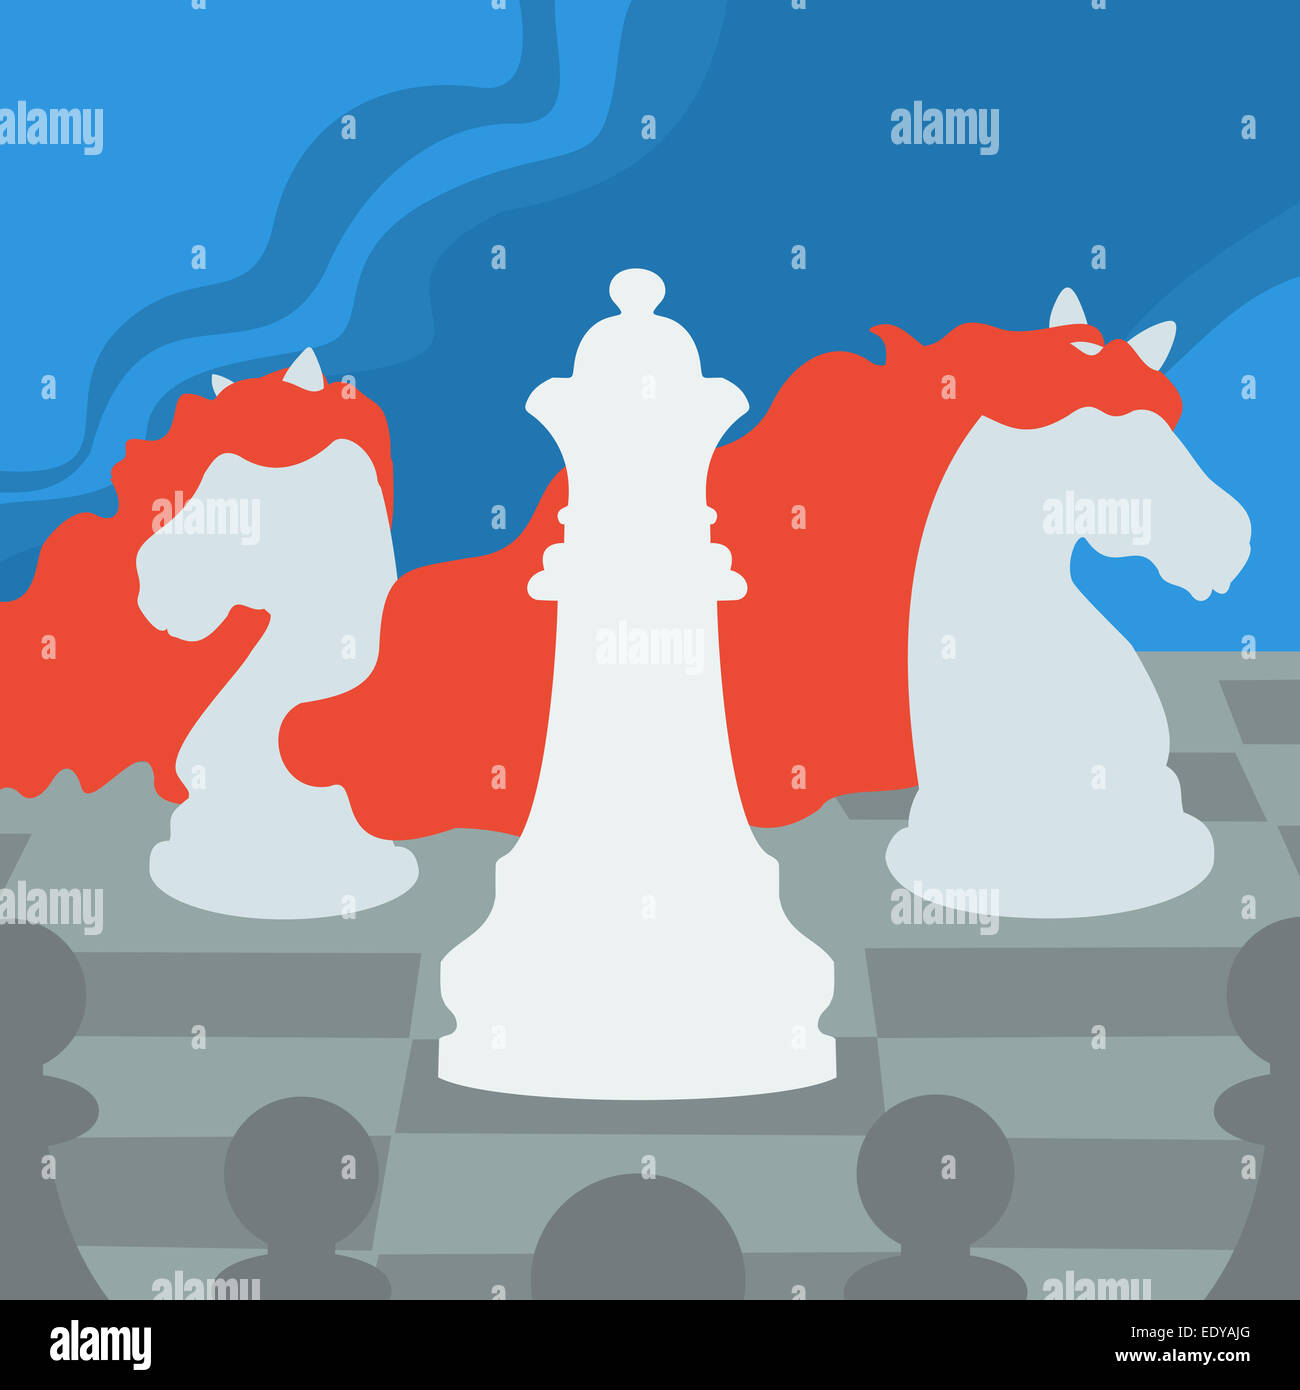 Chess Figures - Stock Image